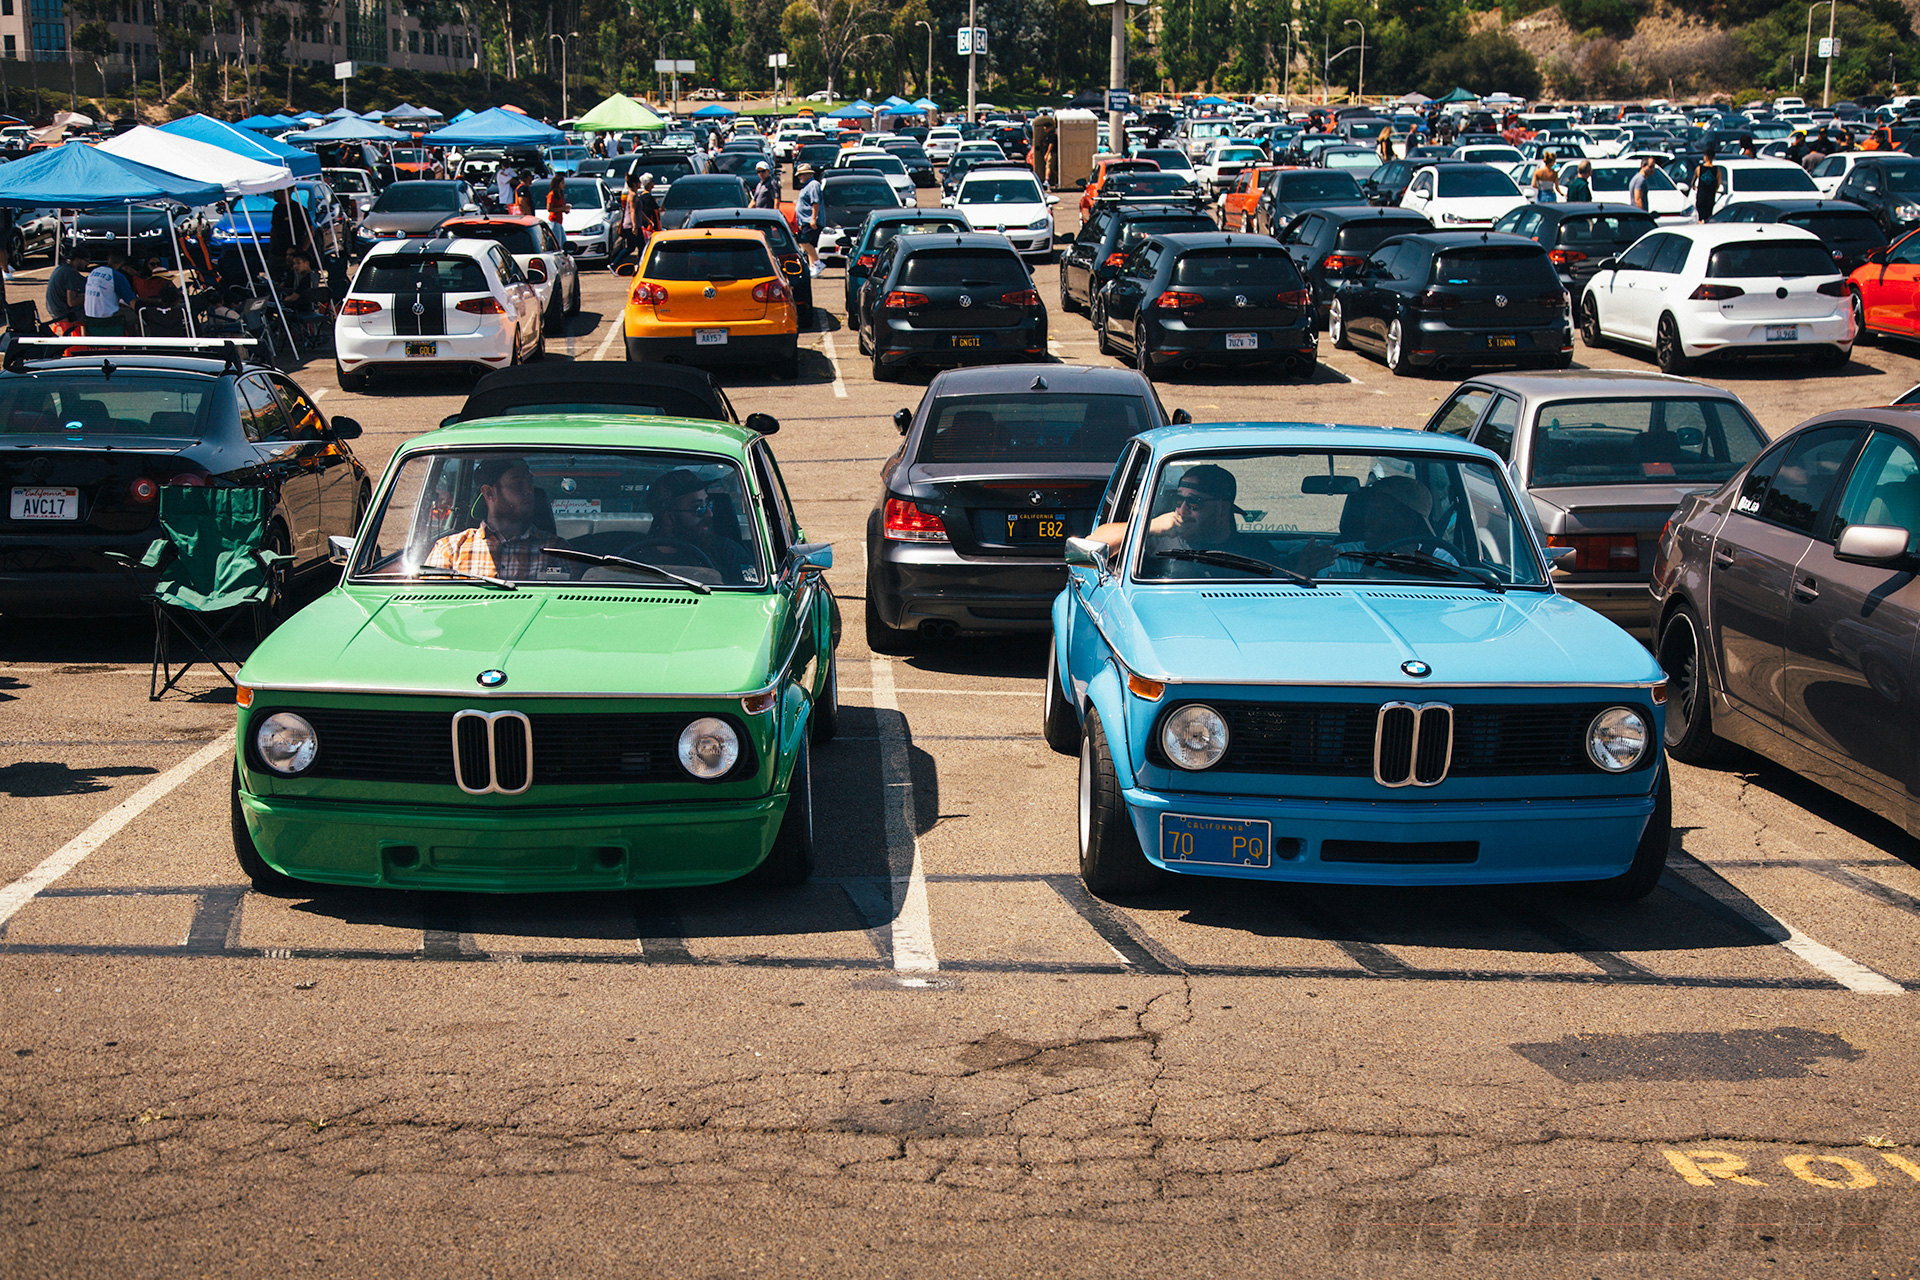 A pair of classic blue and green BMW's on display at Big Socal Euro